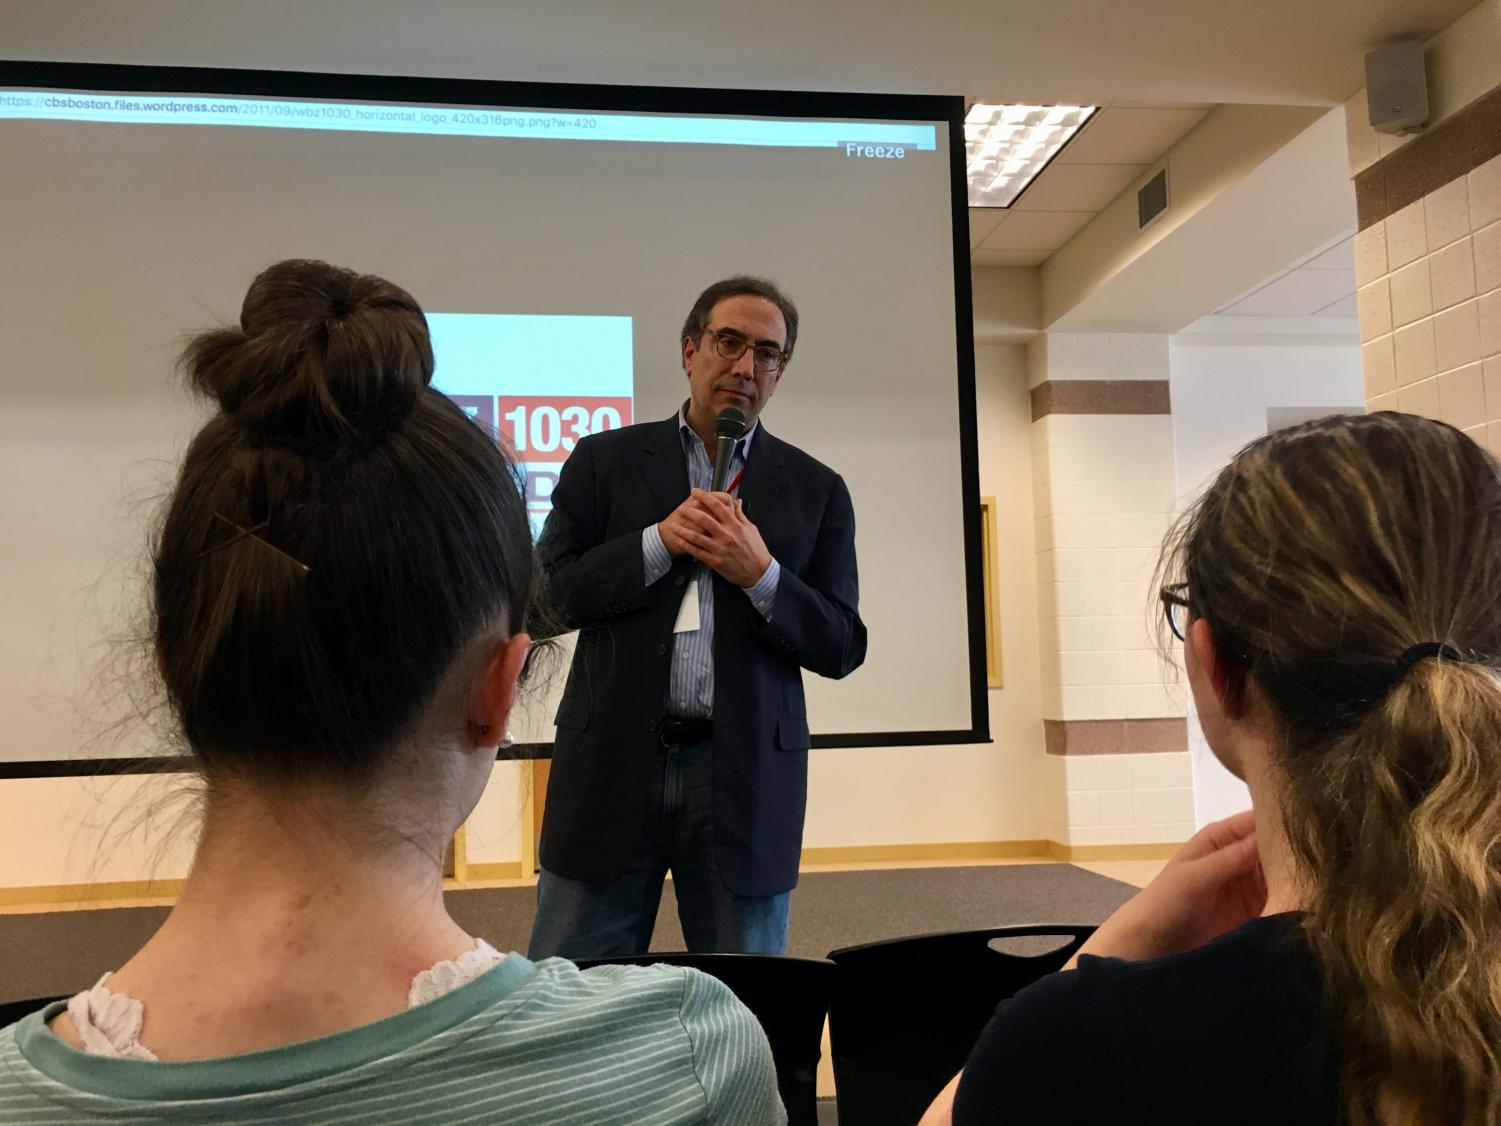 WBZ morning radio anchor Josh Binswanger engages with the audience during a Q&A session following his broacast career presentation with co-worker Matt Ledin.